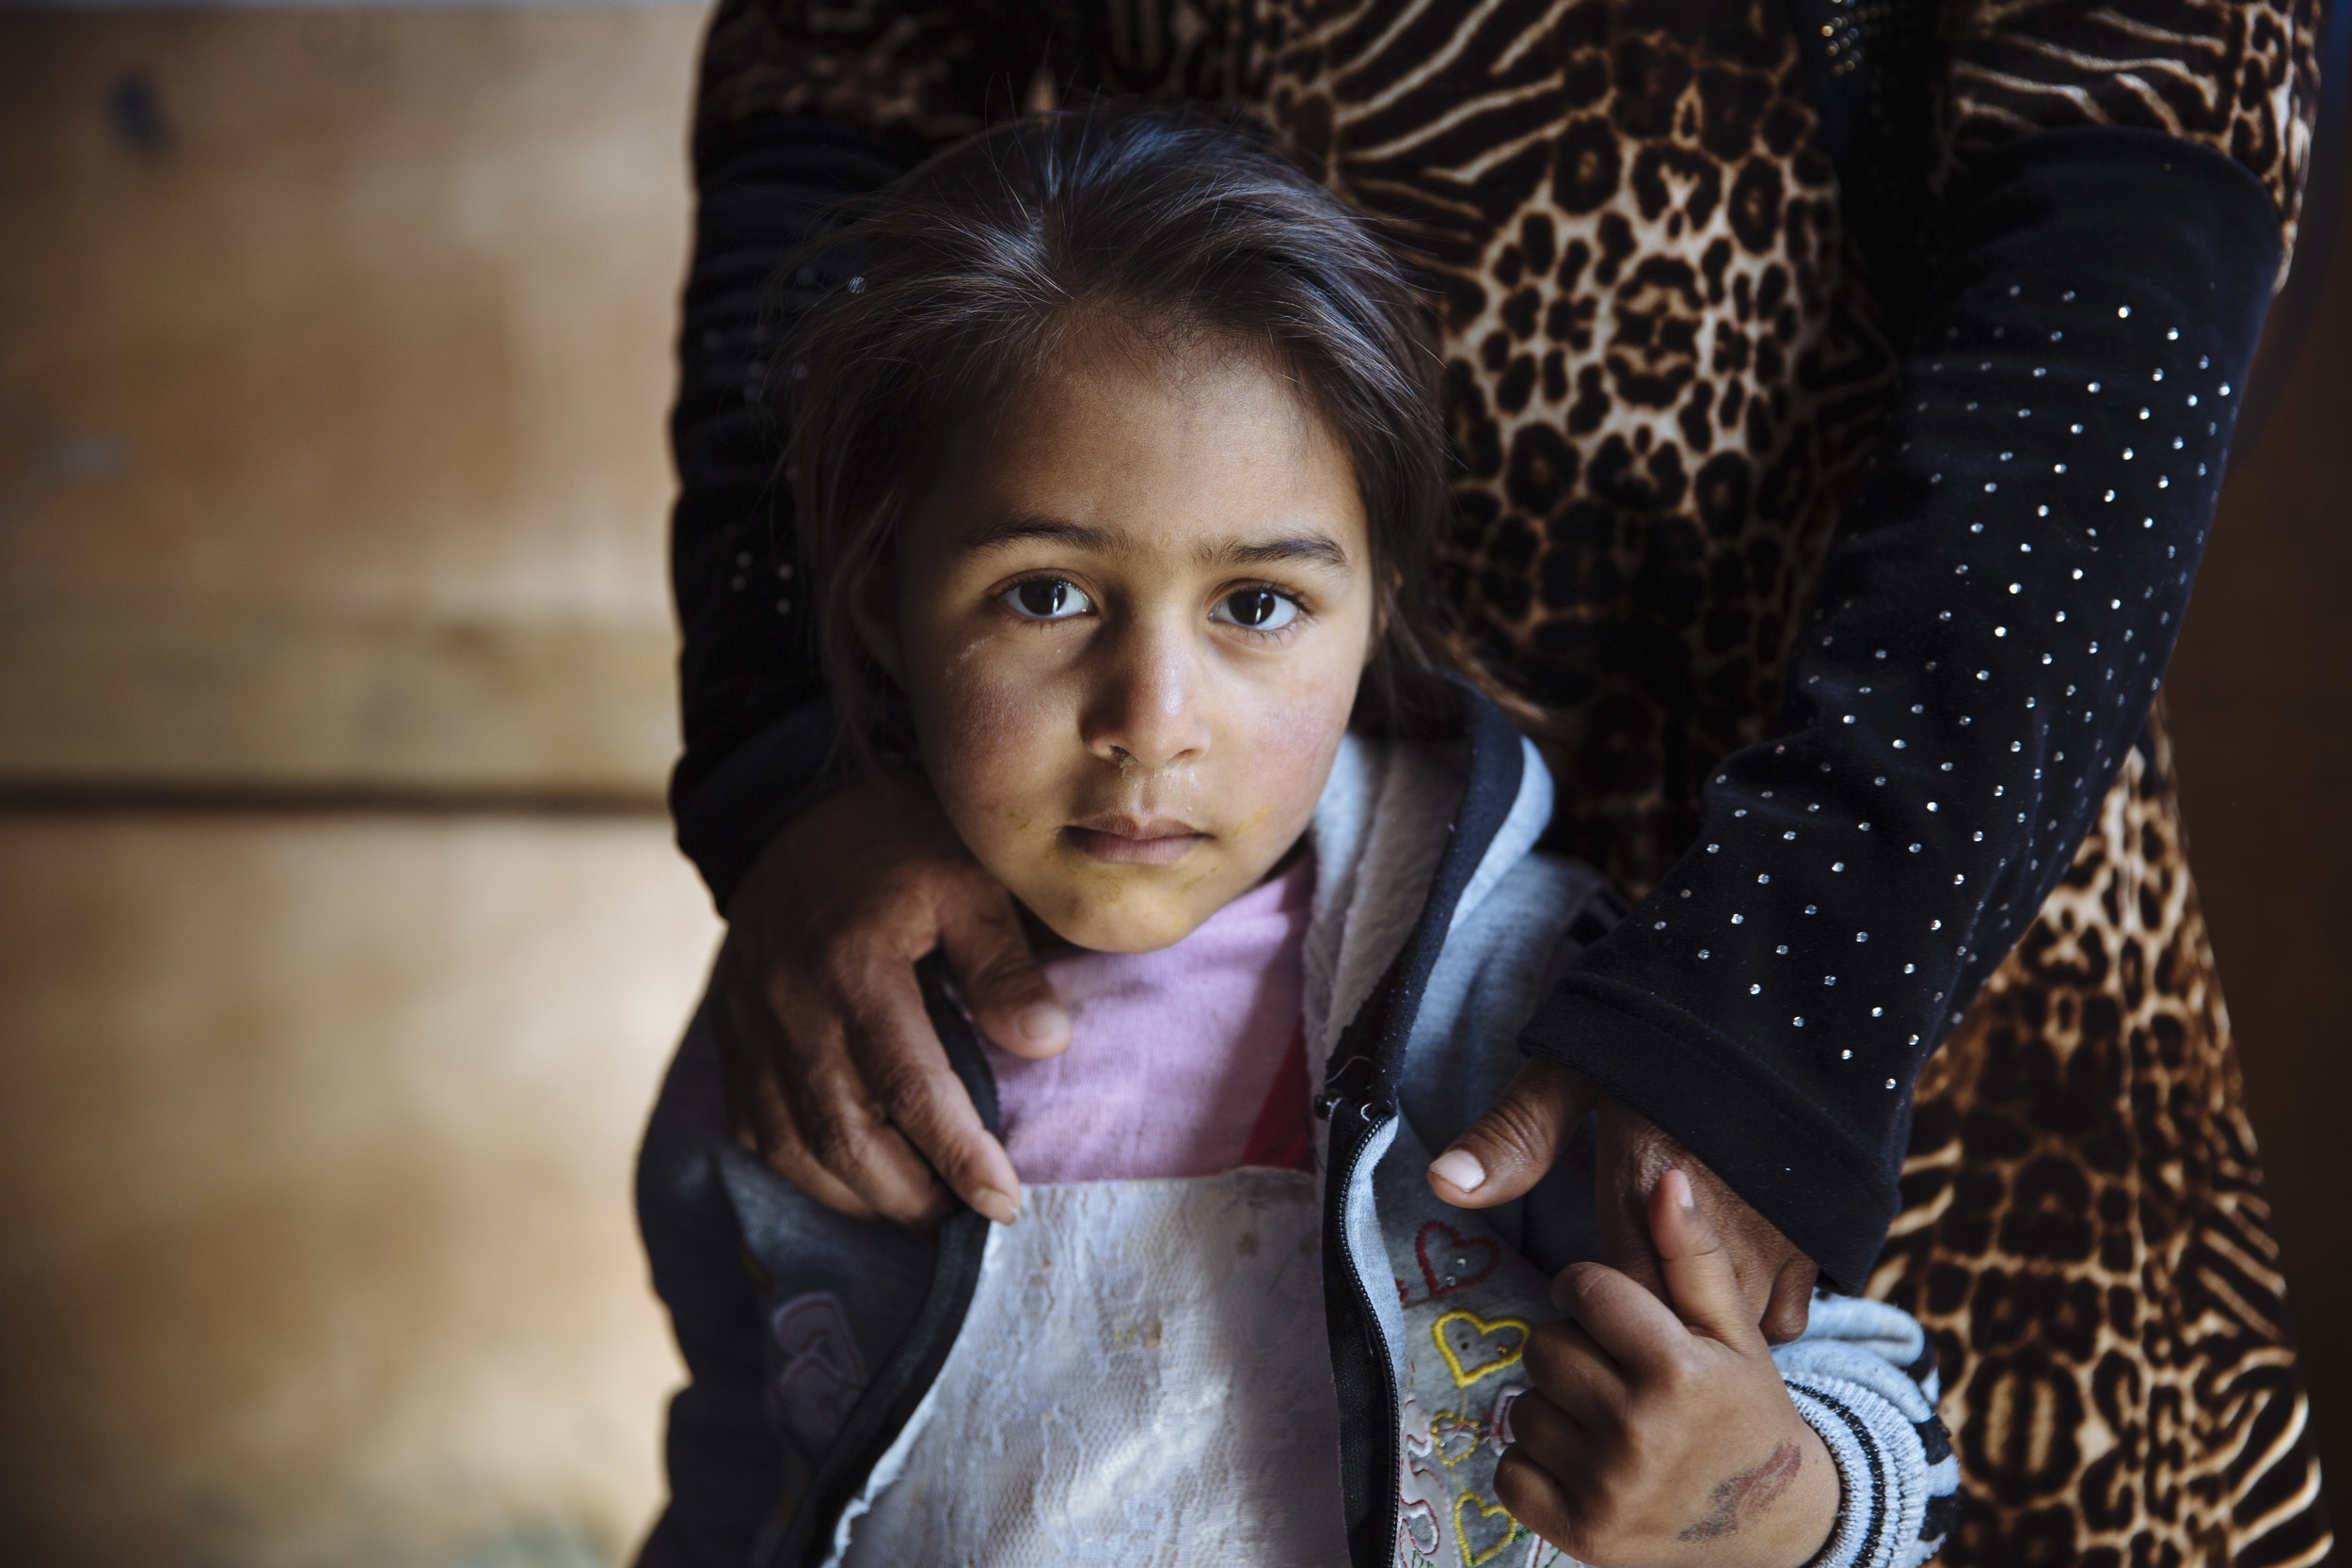 Syrian refugee Raghad, 4, stands with her mother Halima, 37, a mother of nine from rural Aleppo, inside their shelter at an informal settlement near Barelias, Bekaa Valley, Lebanon. Halima received winterization assistance in order to weatherproof her shelter from the harsh winter.